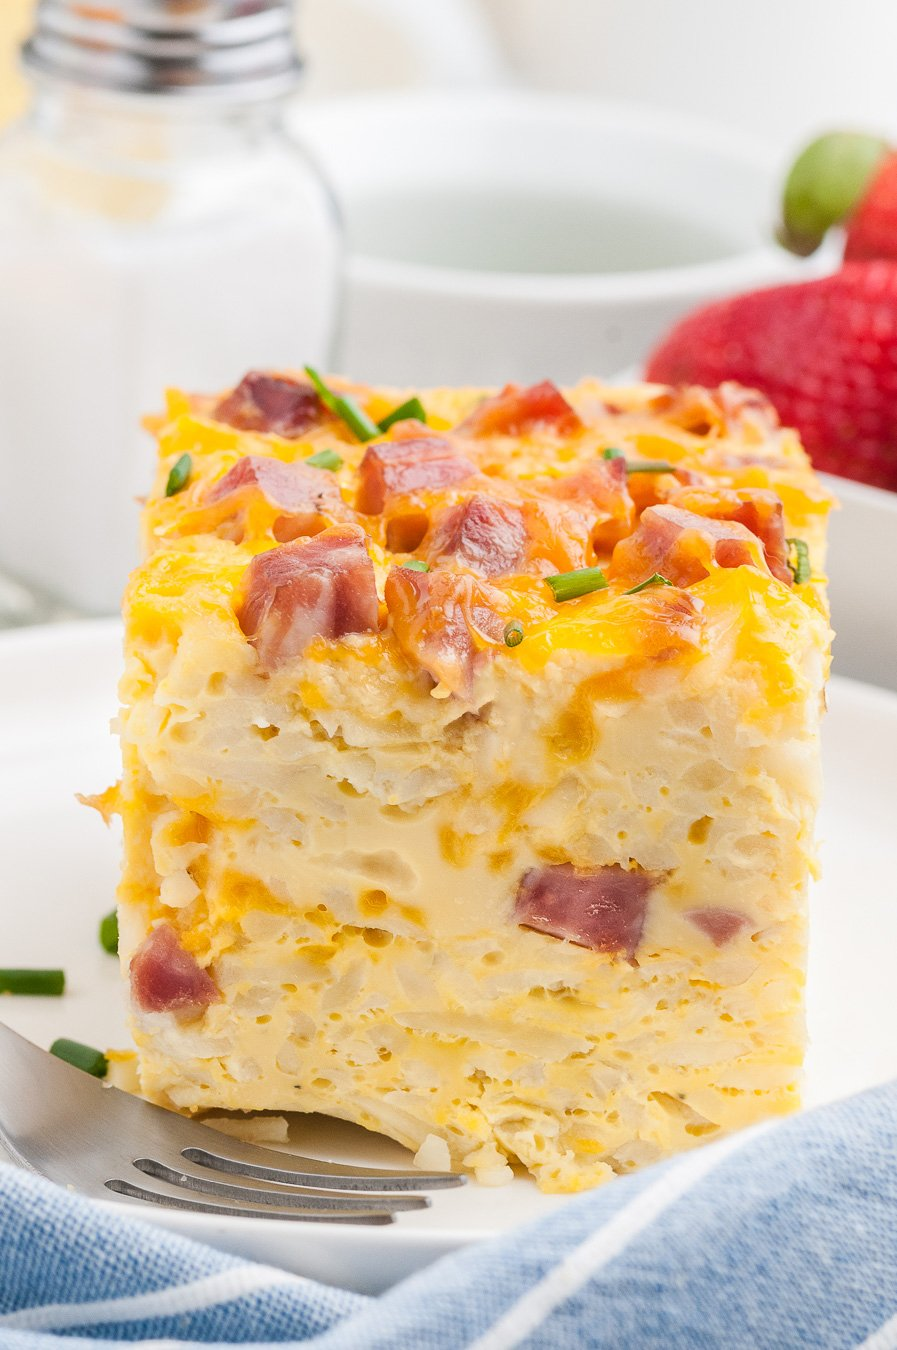 huge slice of breakfast casserole. Tall slice of egg casserole with ham and cheddar.